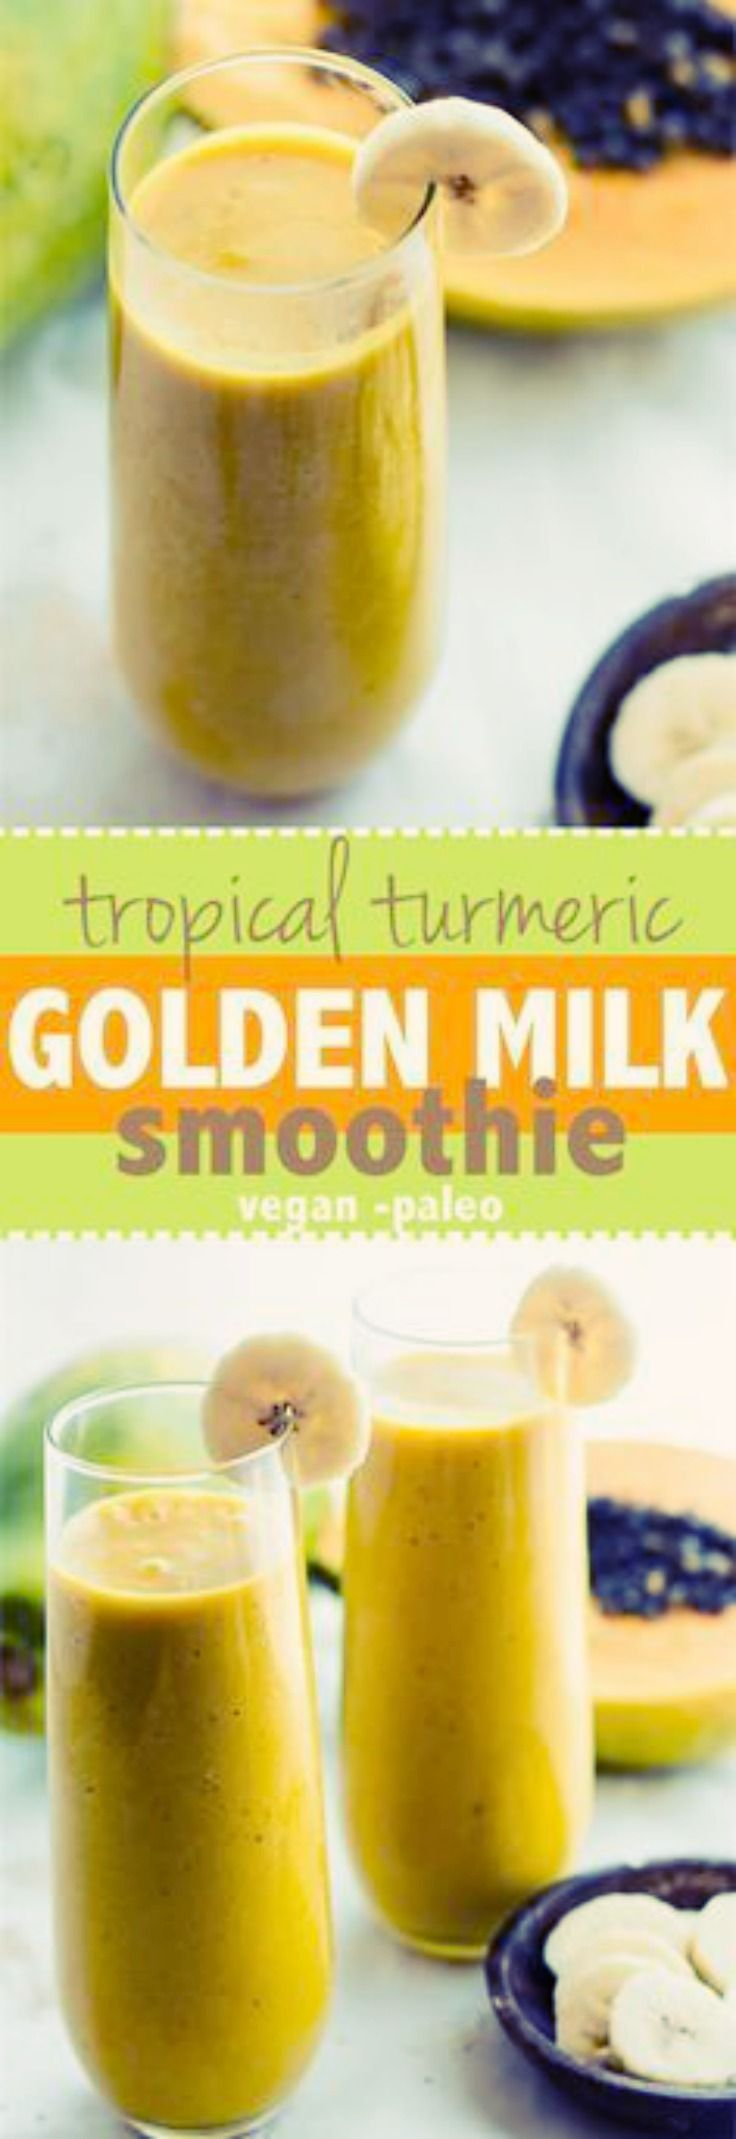 TROPICAL TURMERIC GOLDEN MILK VEGAN SMOOTHIE   Anti-inflammatory boosting Tropical Turmeric Golden Milk Smoothie! A paleo and vegan friendly smoothie packed with the mega nutrients from turmeric tea golden milk and tropical fruit combined! Packed with fiber, healthy fats, and a whole lotta nourishment!   #smoothie #batido #tropical #turmeric #curcuma #GoldenMilk #vegan #vegano #paleo #antiinflammatory #antiinflamatorio  via @cottercrunch